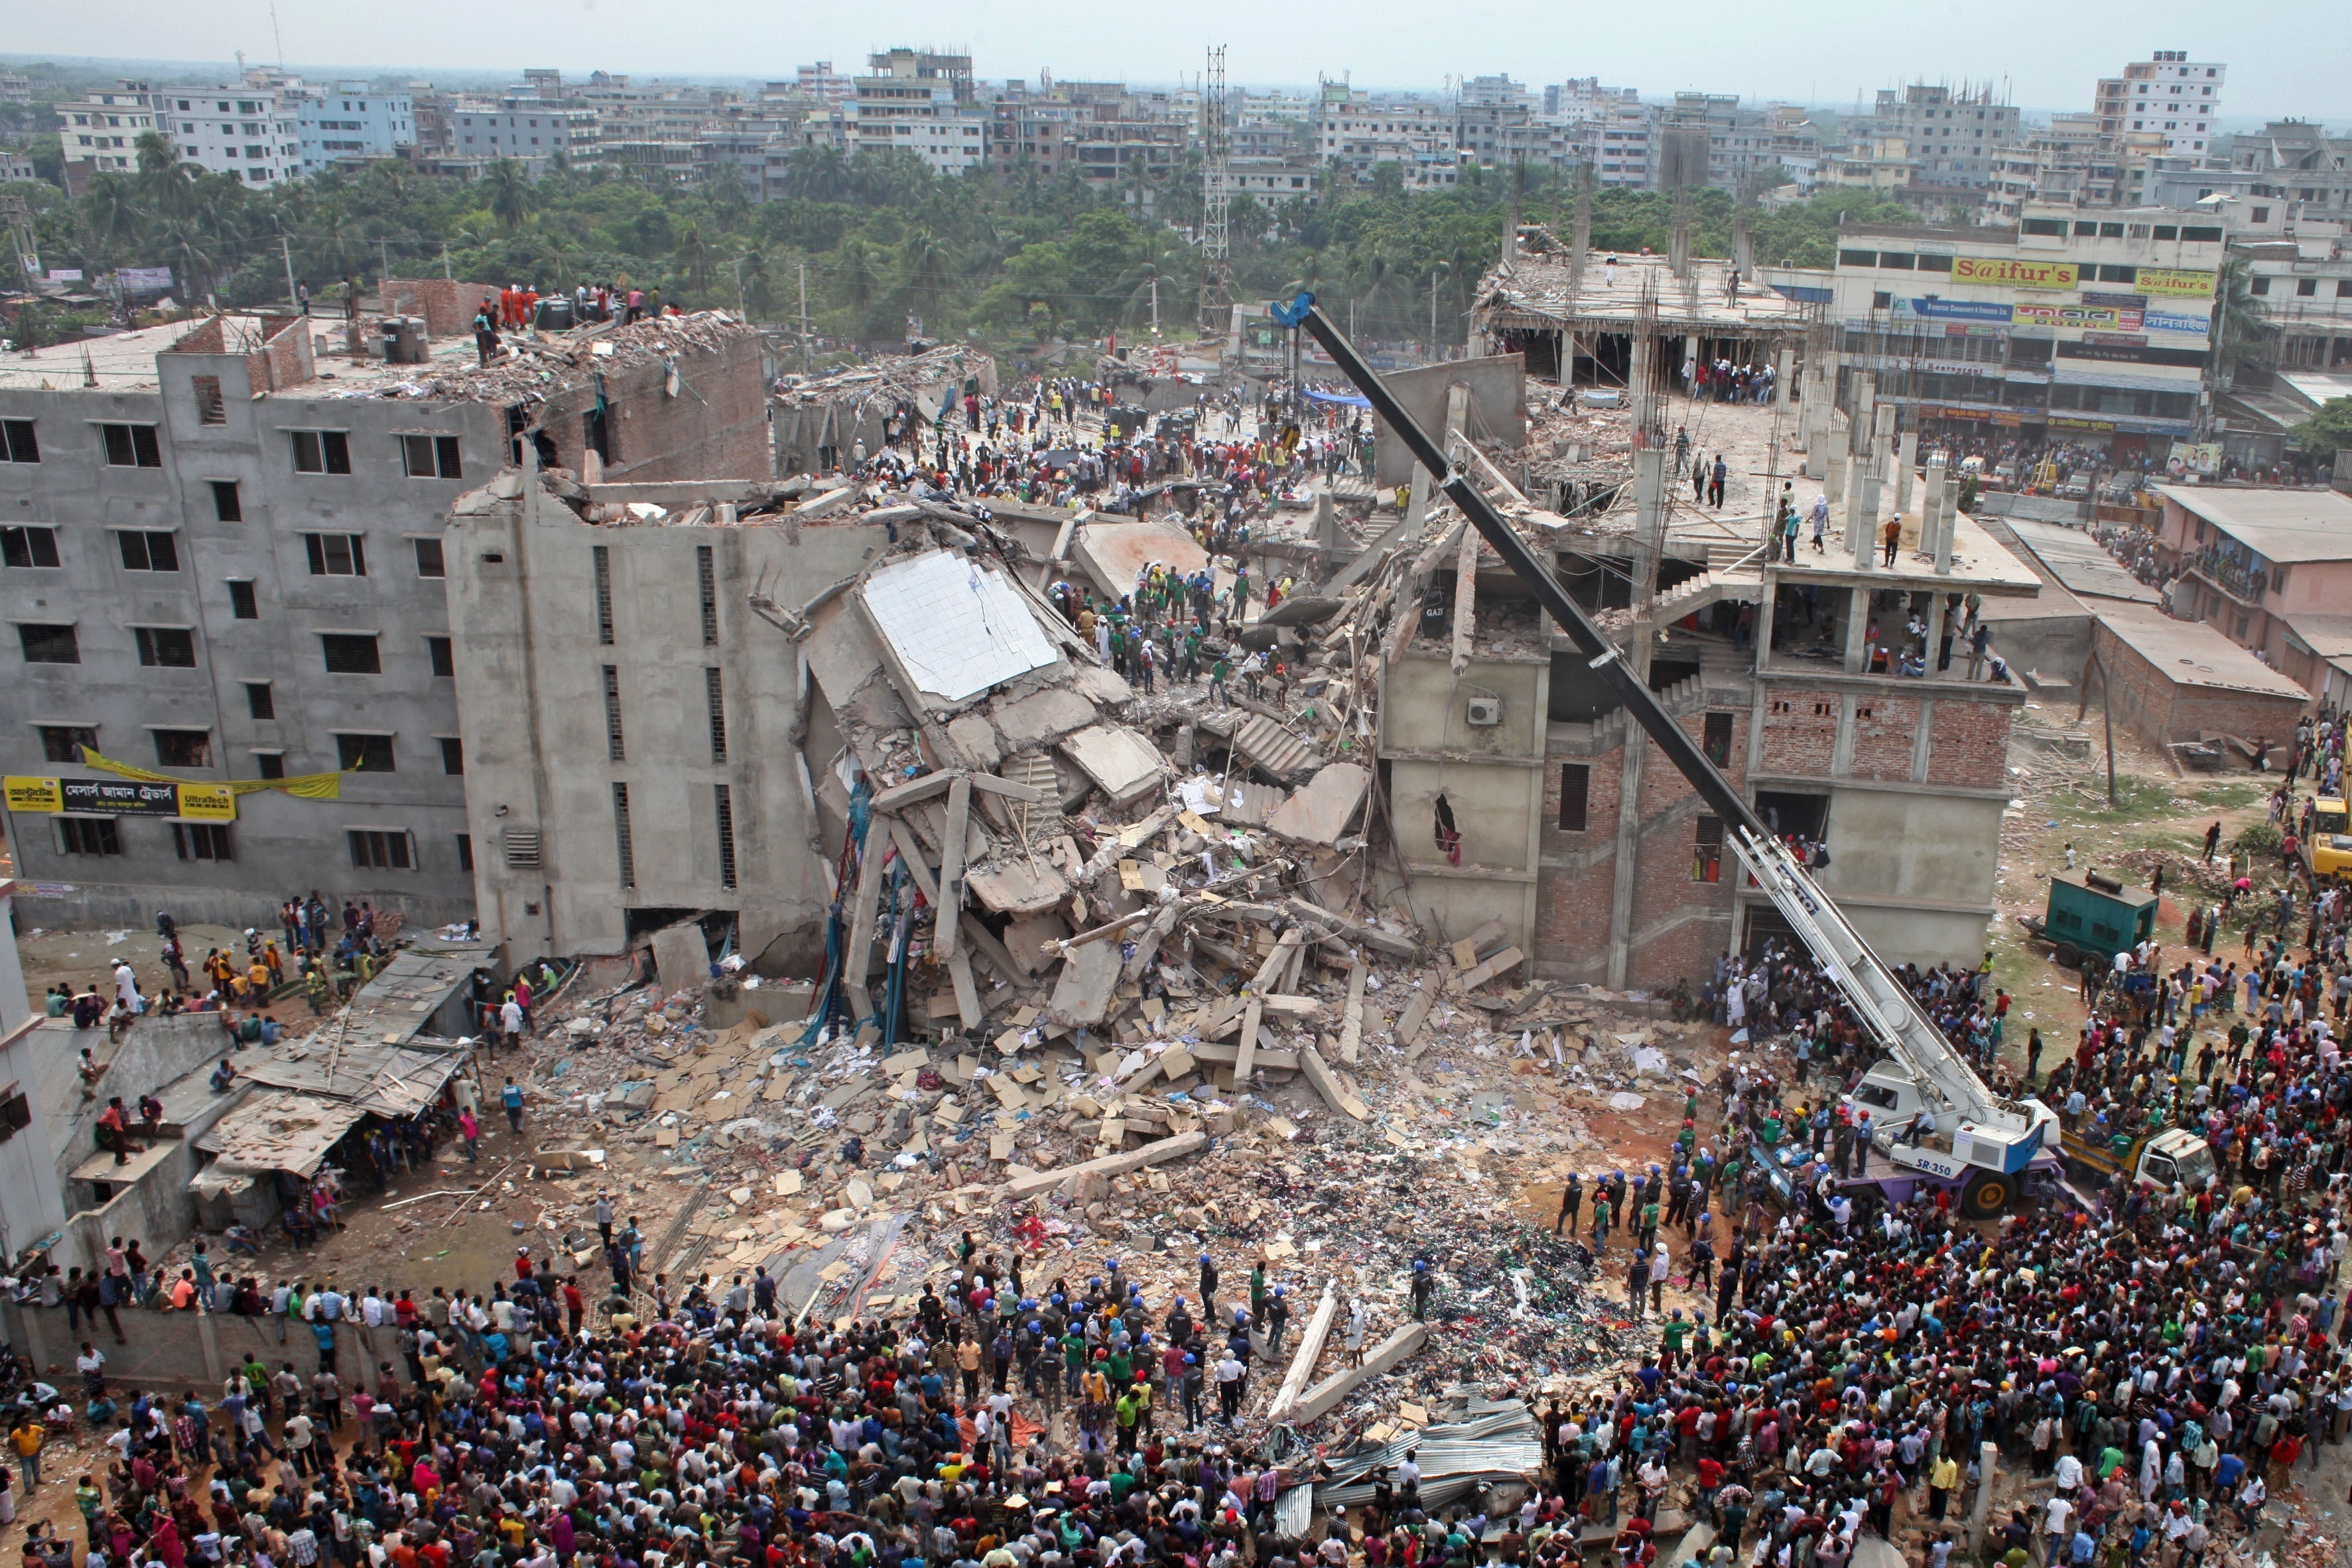 5 Years After the Bangladesh Factory Collapse, Are Workers Safer